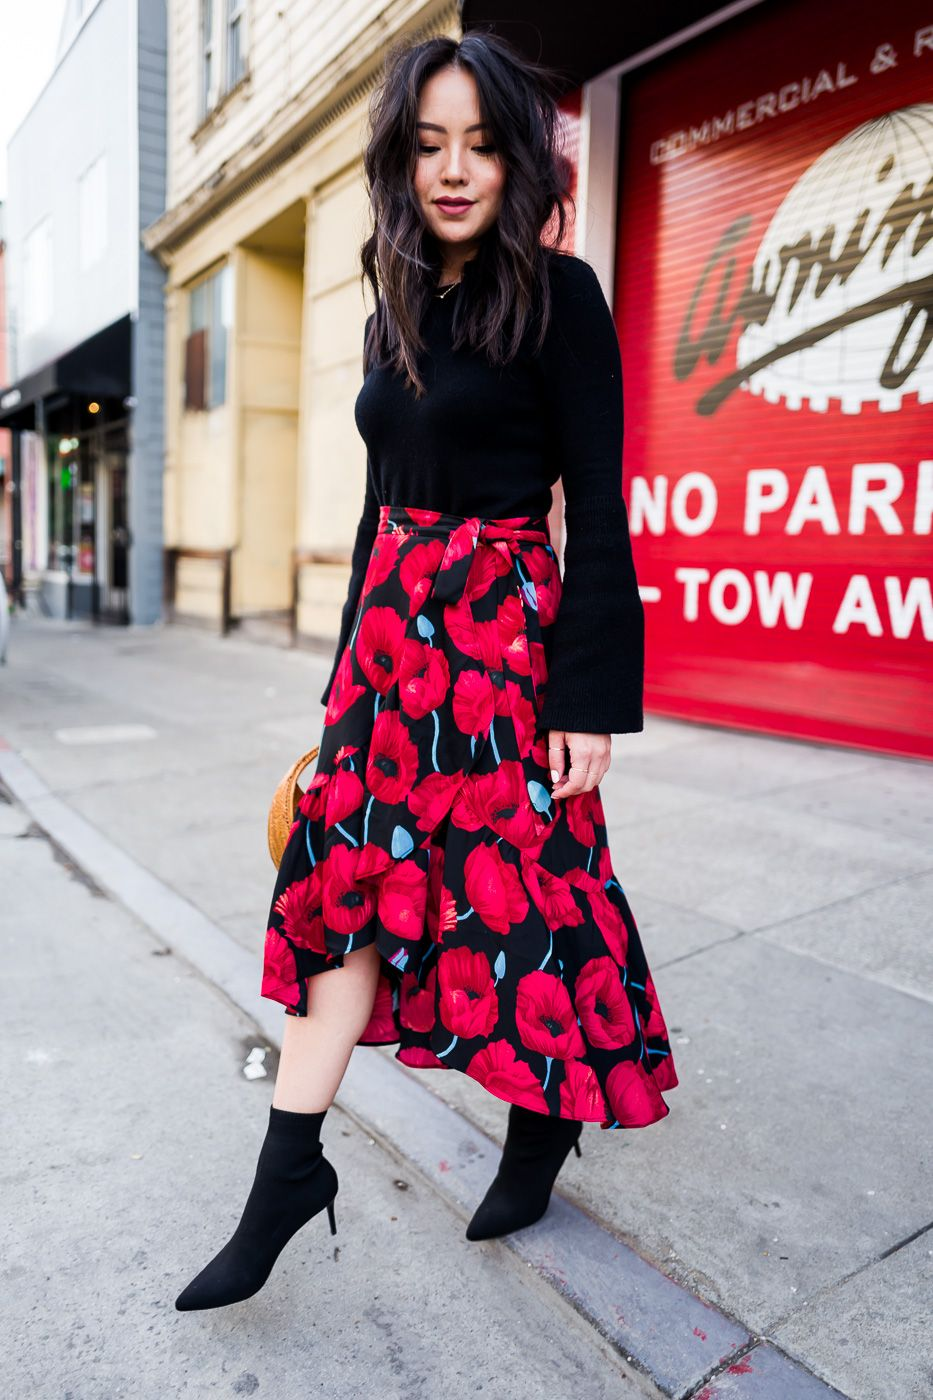 b12c0b5d49 red-and-black-floral-wrap-midi-skirt | Skirts | Floral skirt outfits ...